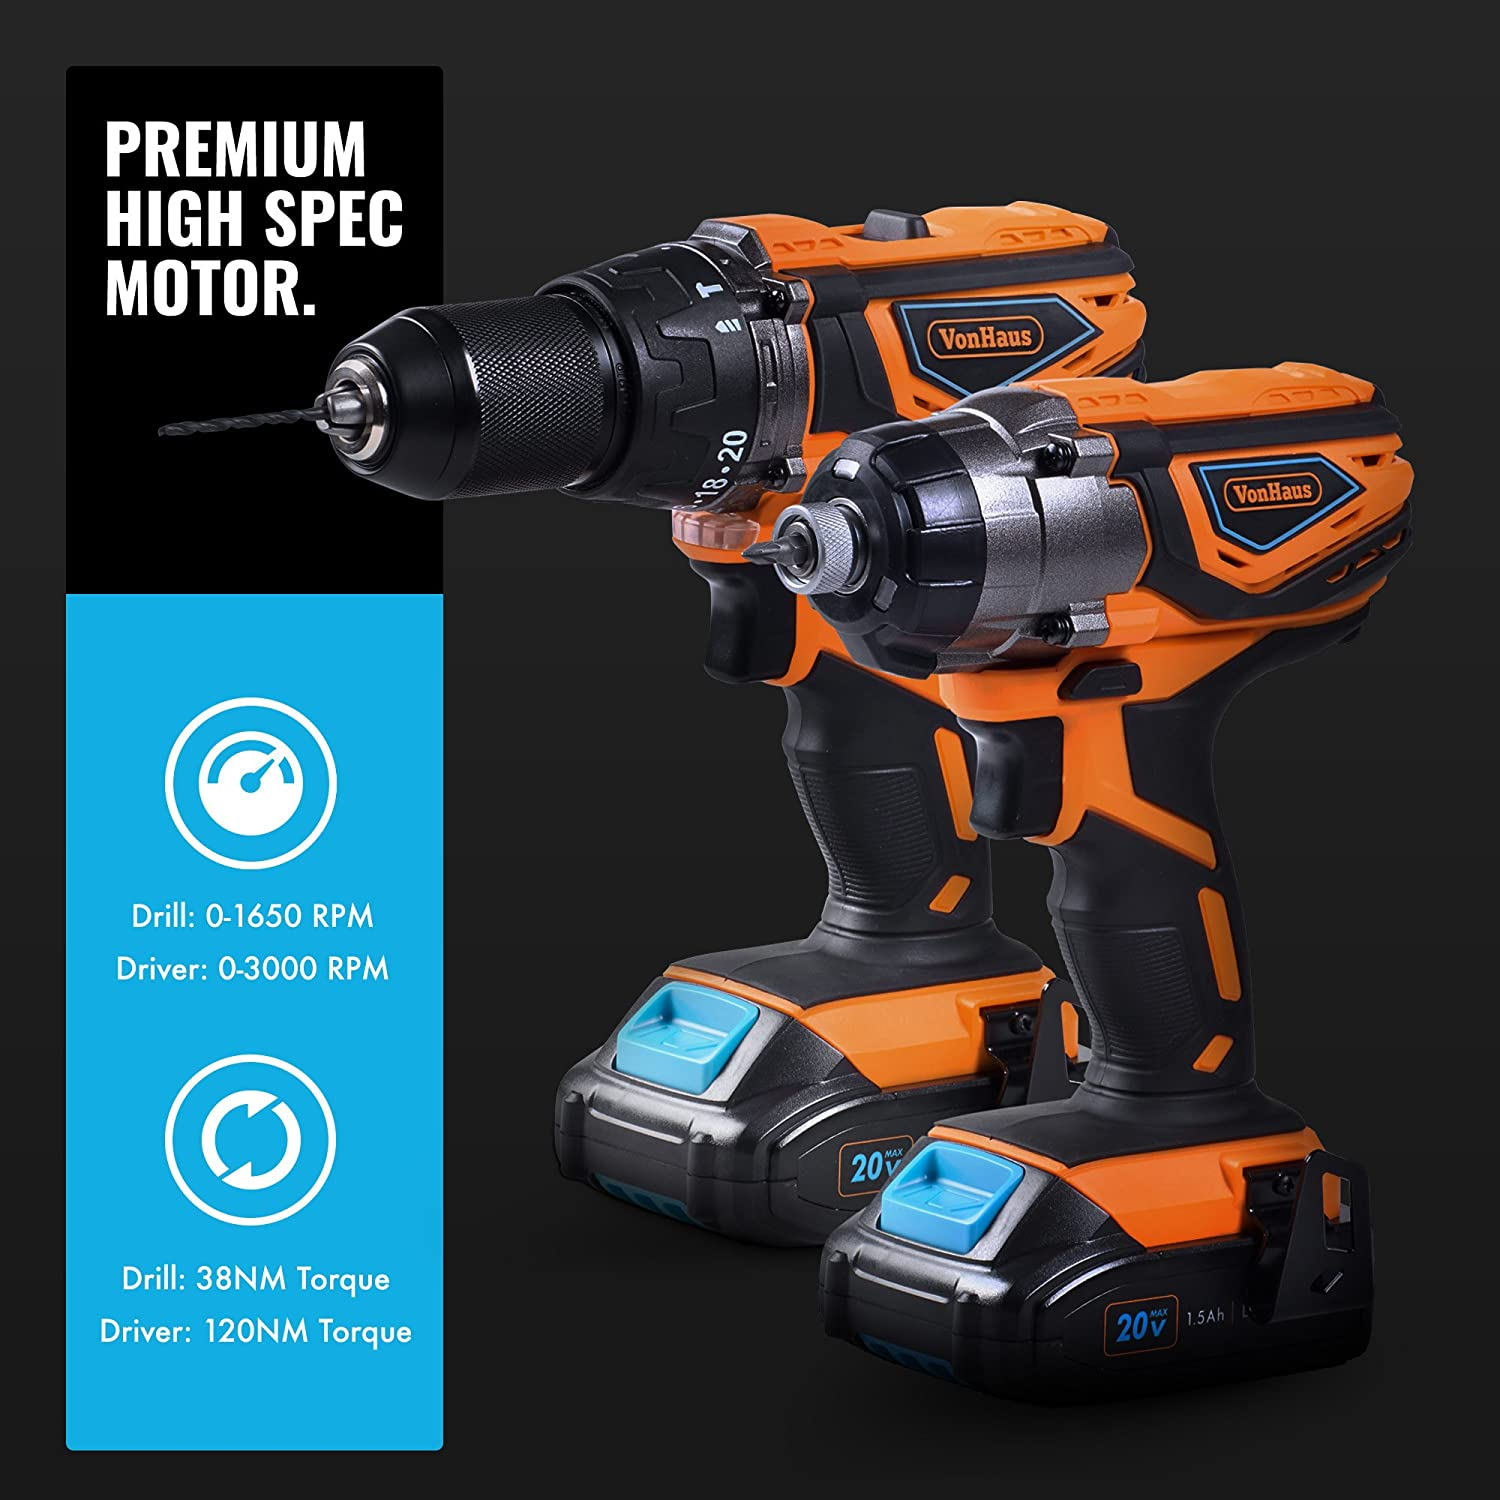 """/¼/"""" Hex Drive, 120Nm Torque VonHaus Cordless Impact Driver with 3.0Ah Li-ion 20V MAX Battery Includes Direction Control /& Variable Speed Trigger Charger /& Power Tool Bag"""